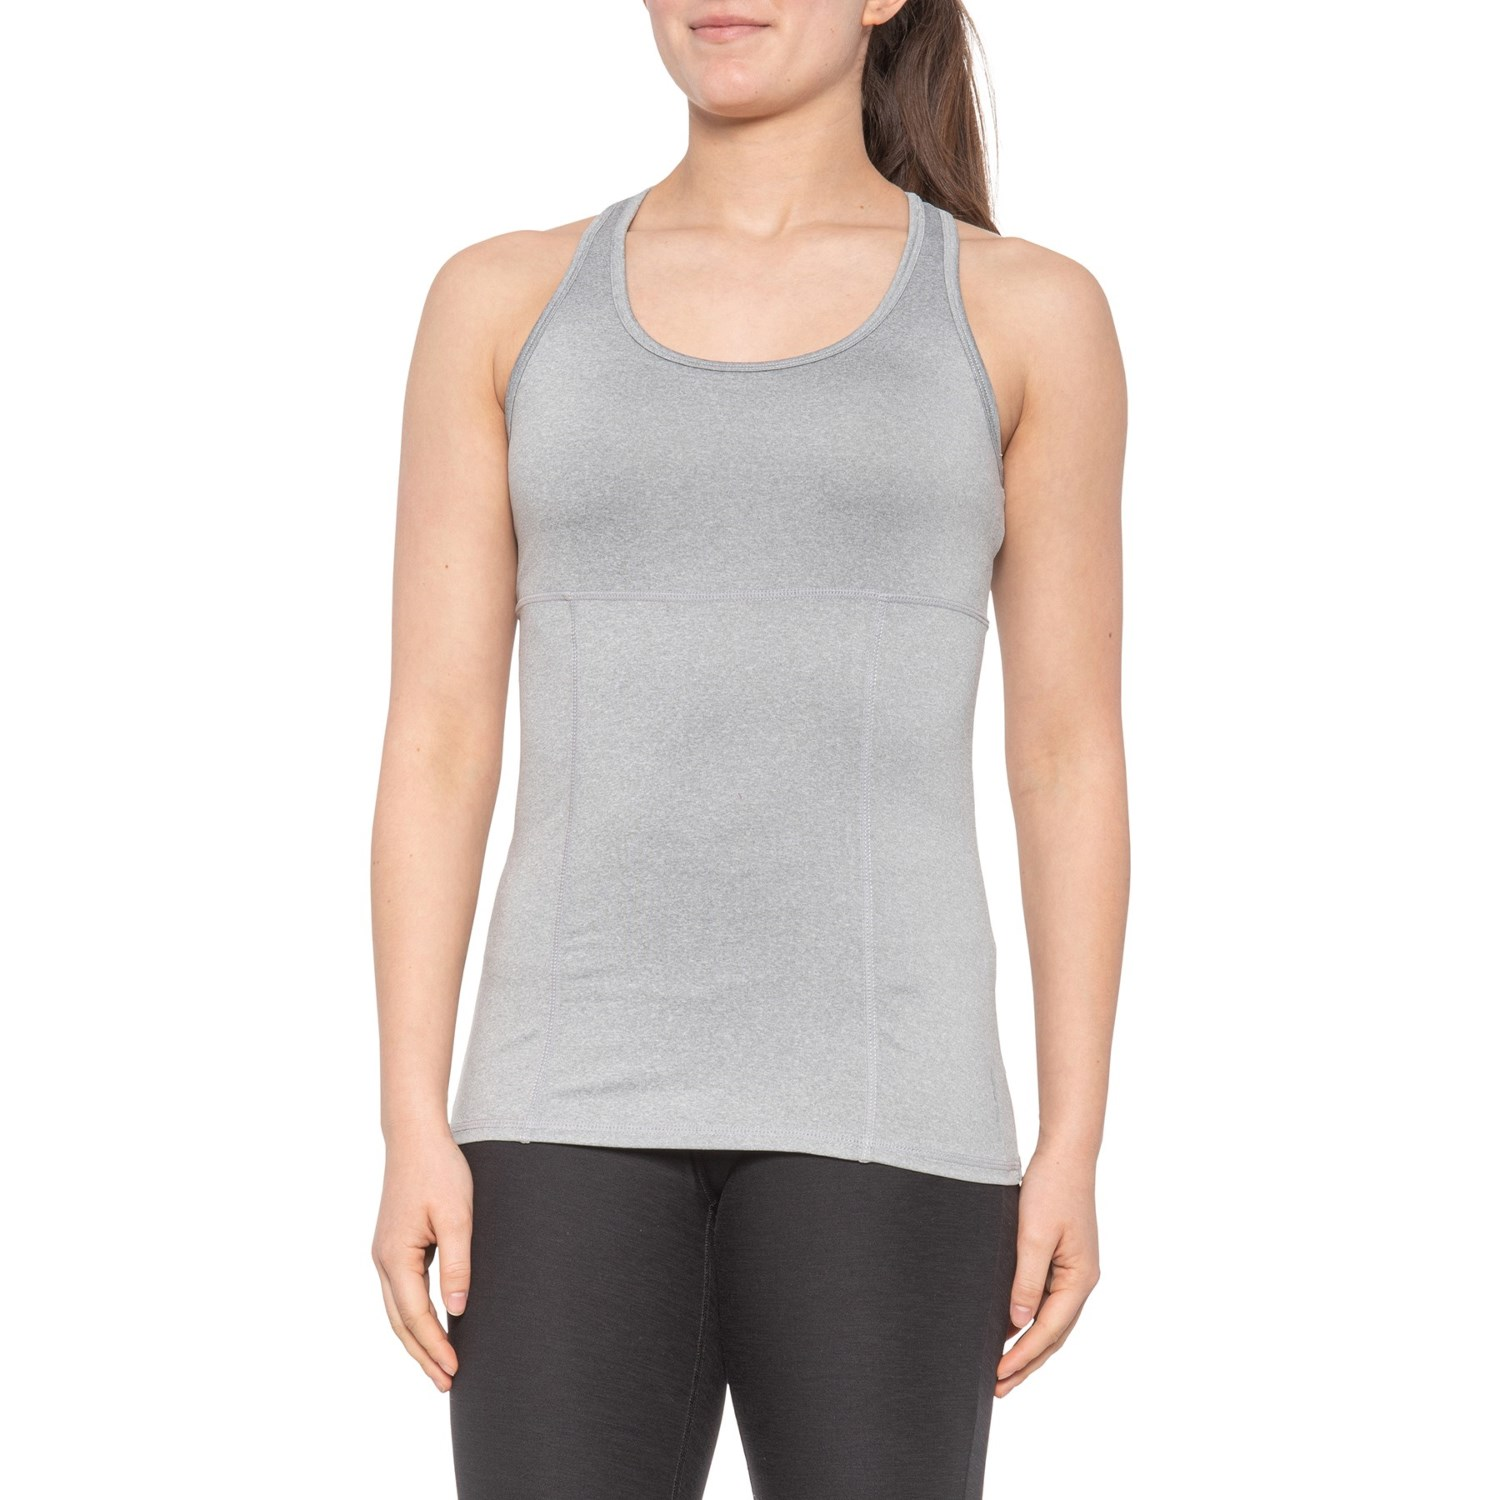 Image result for Tank Tops for 50 year women